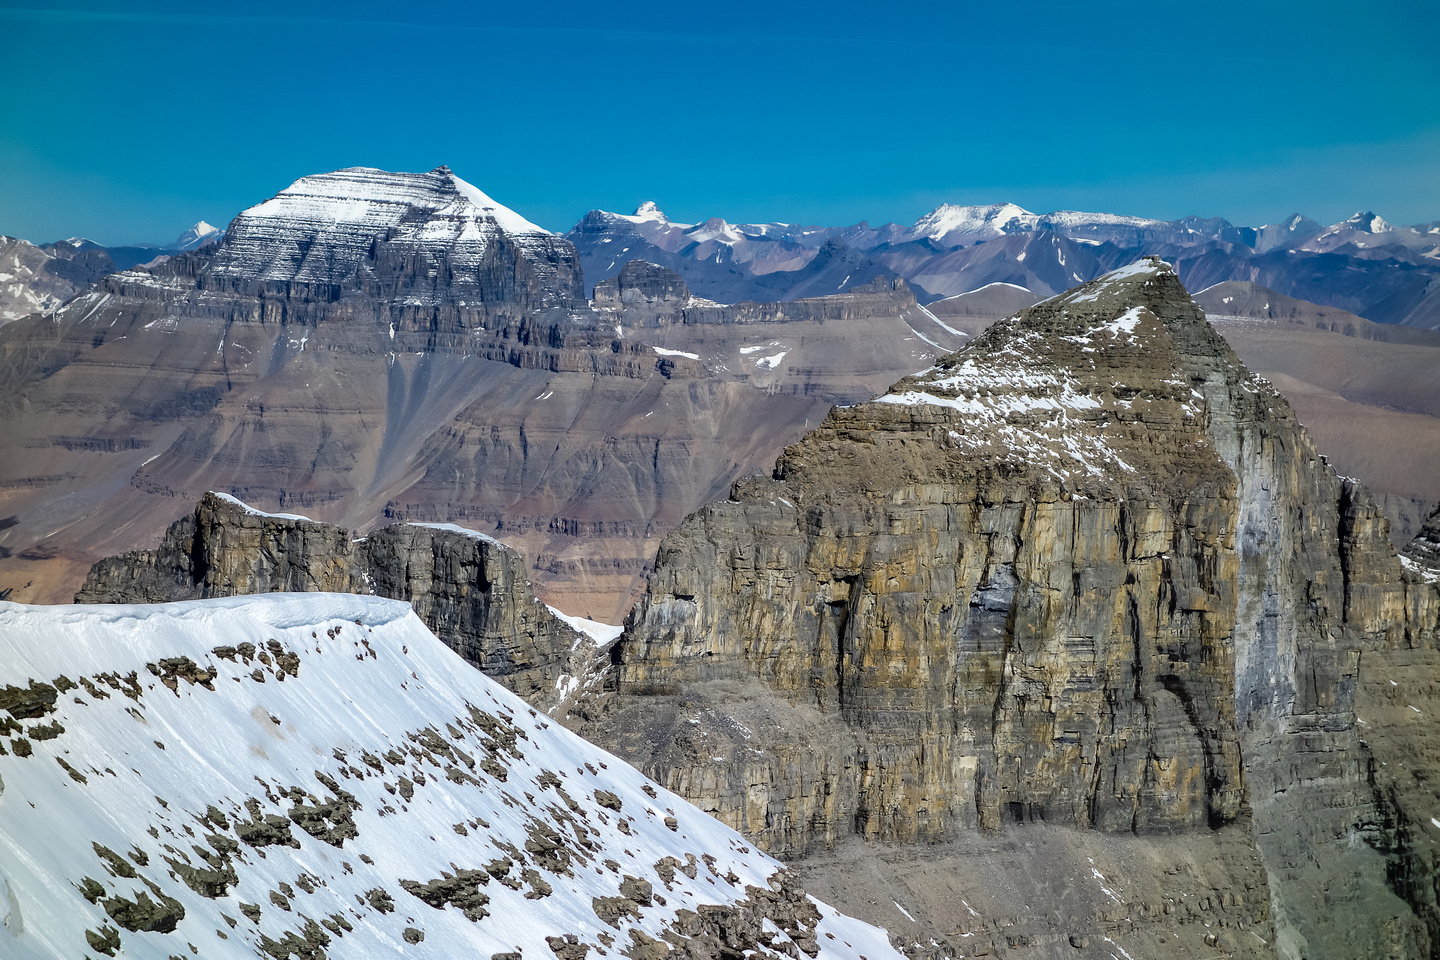 Mount Saskatchewan on the left and Willerval in the foreground with it's newly bared east face!